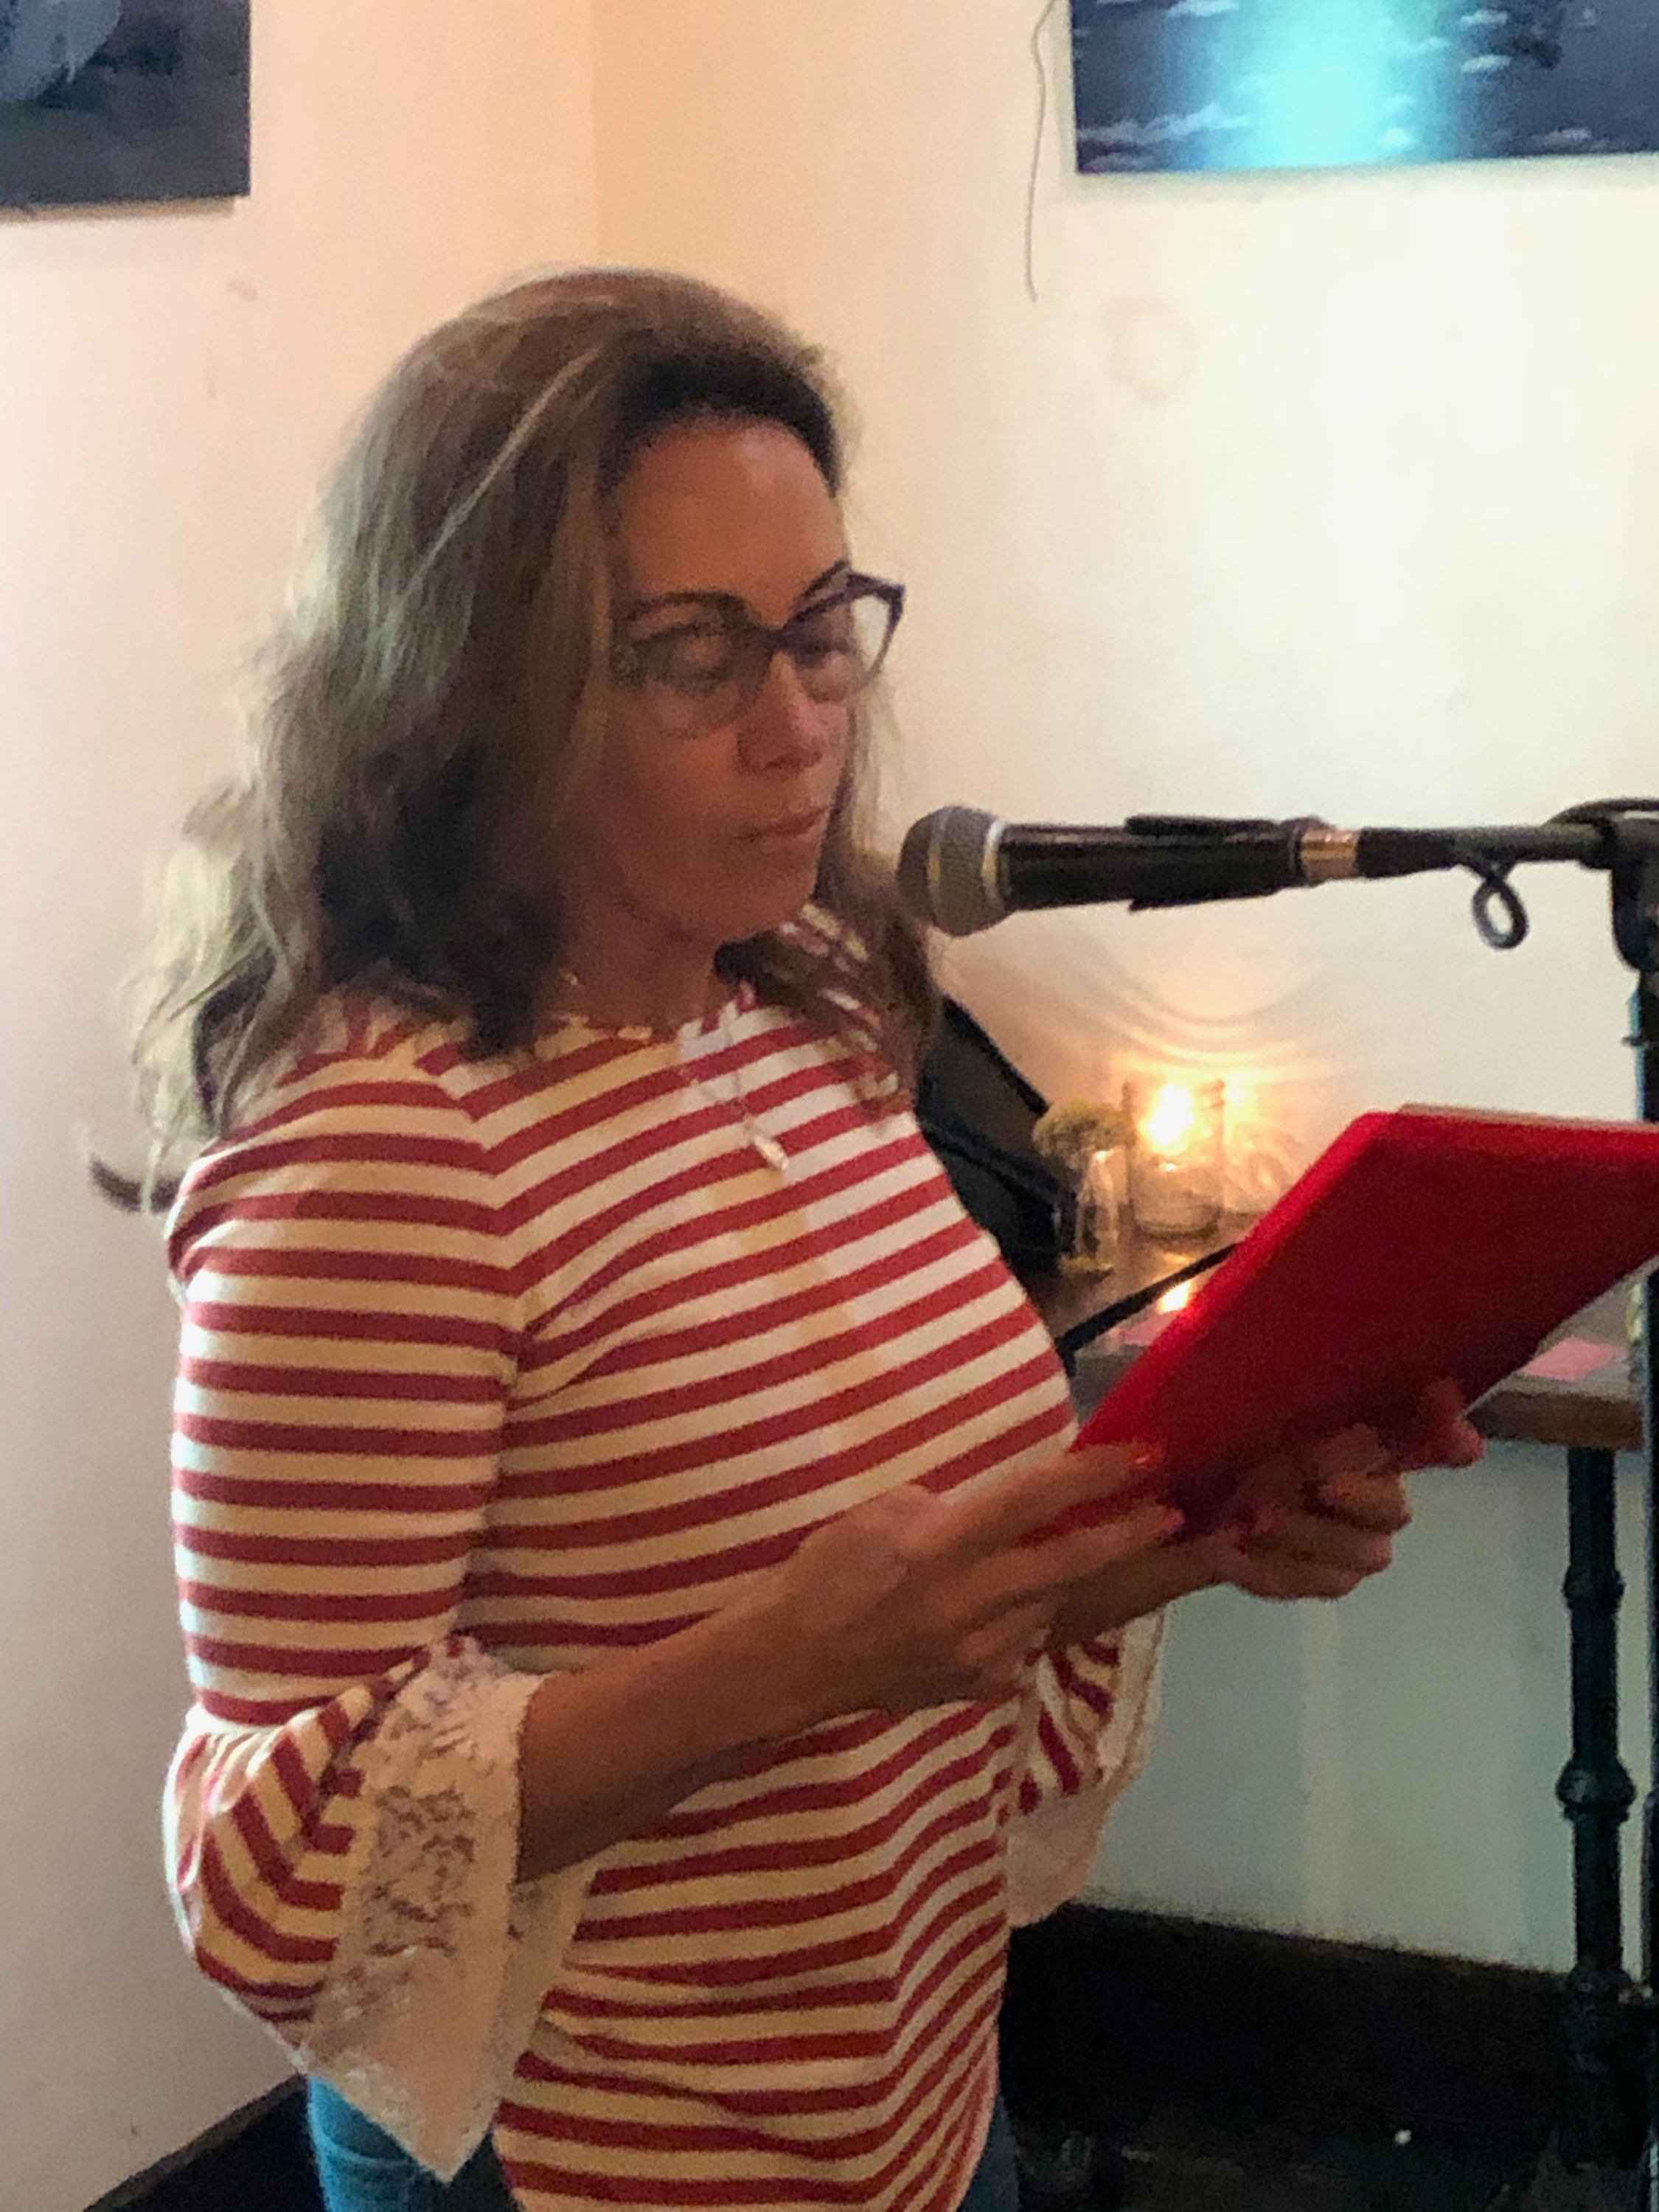 julia scudiero at the first tuesdays open mic - oct 1 2019